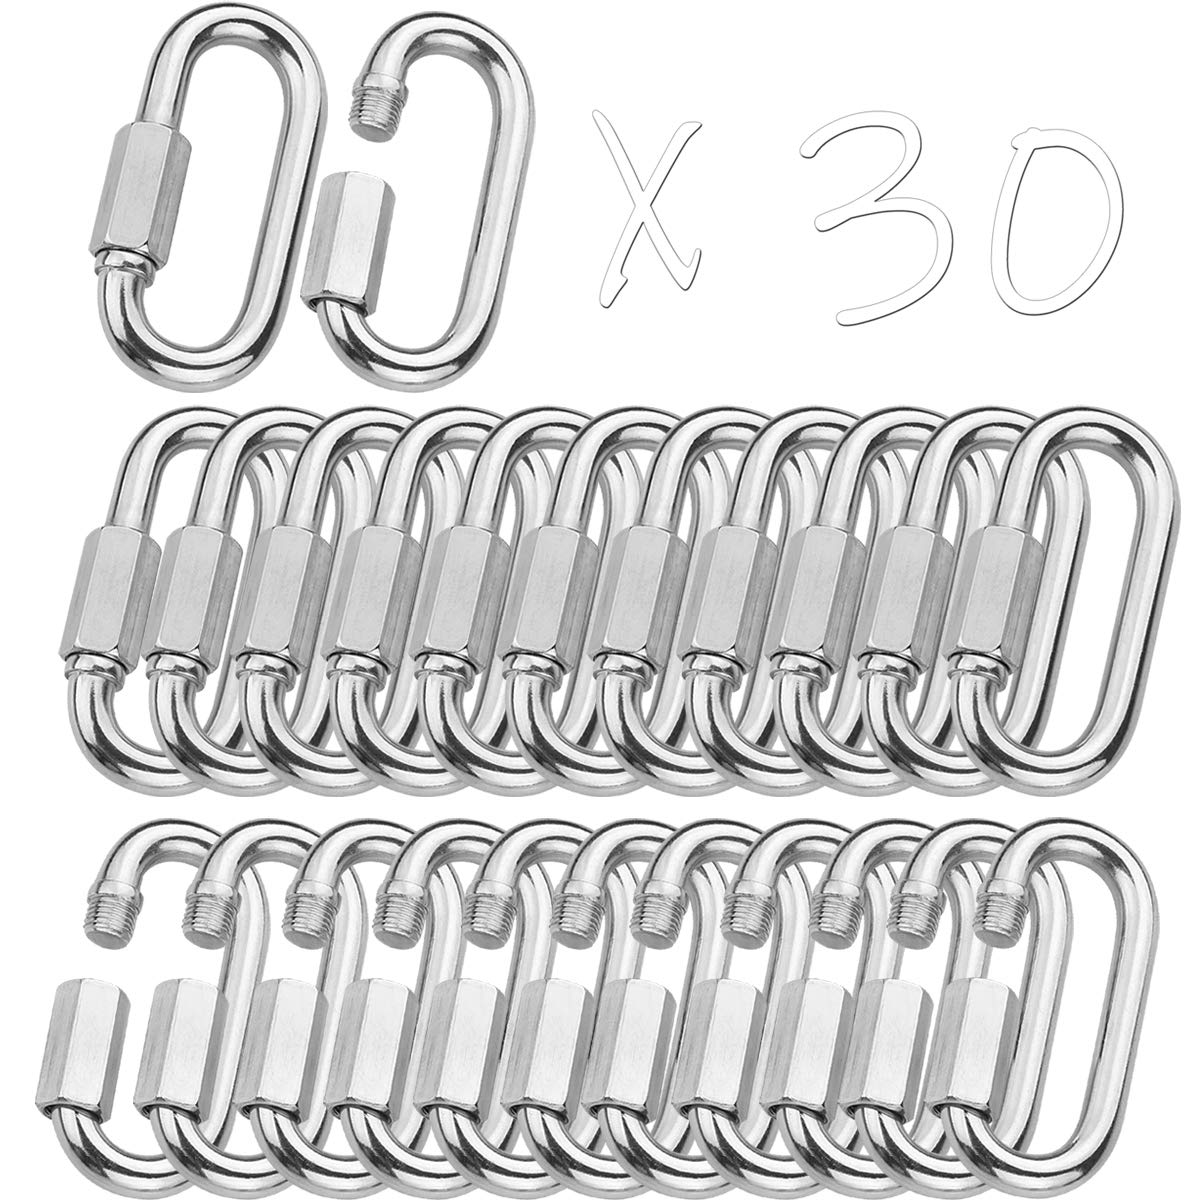 MFOREVER 304 Stainless Steel Quick Links Locking Carabiner for Outdoor Traveling Equipment M8-15PACK